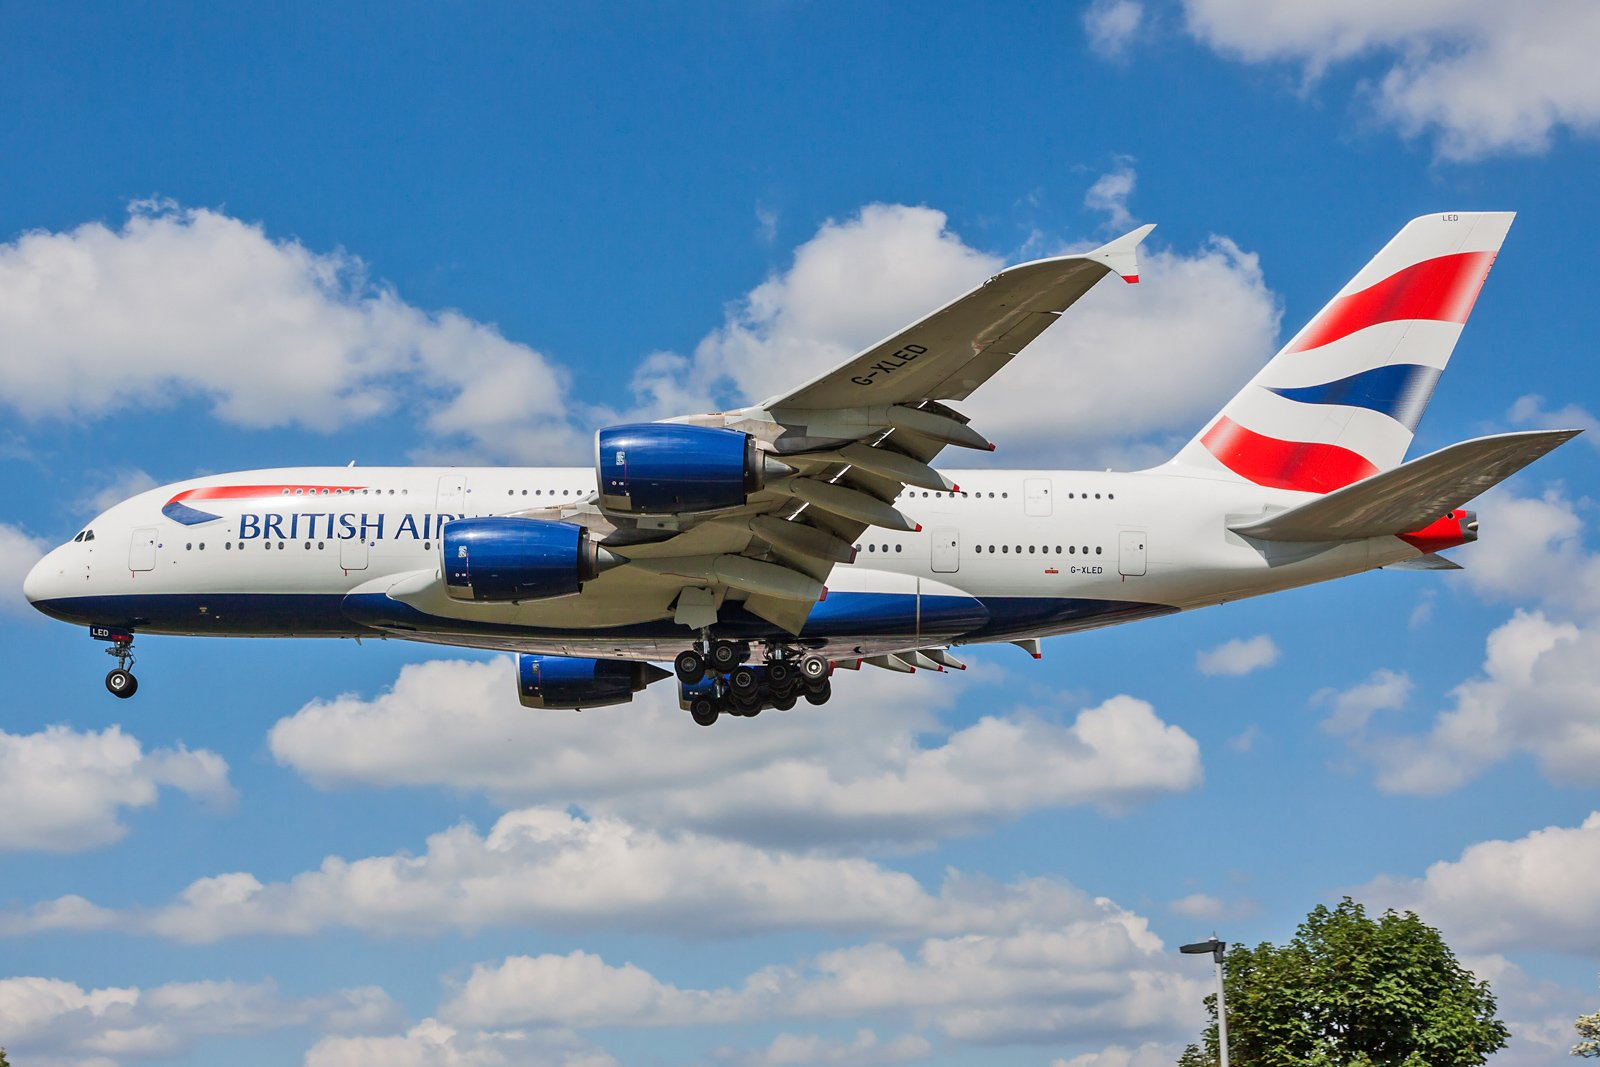 British Airways Airbus A380-841 G-XLED